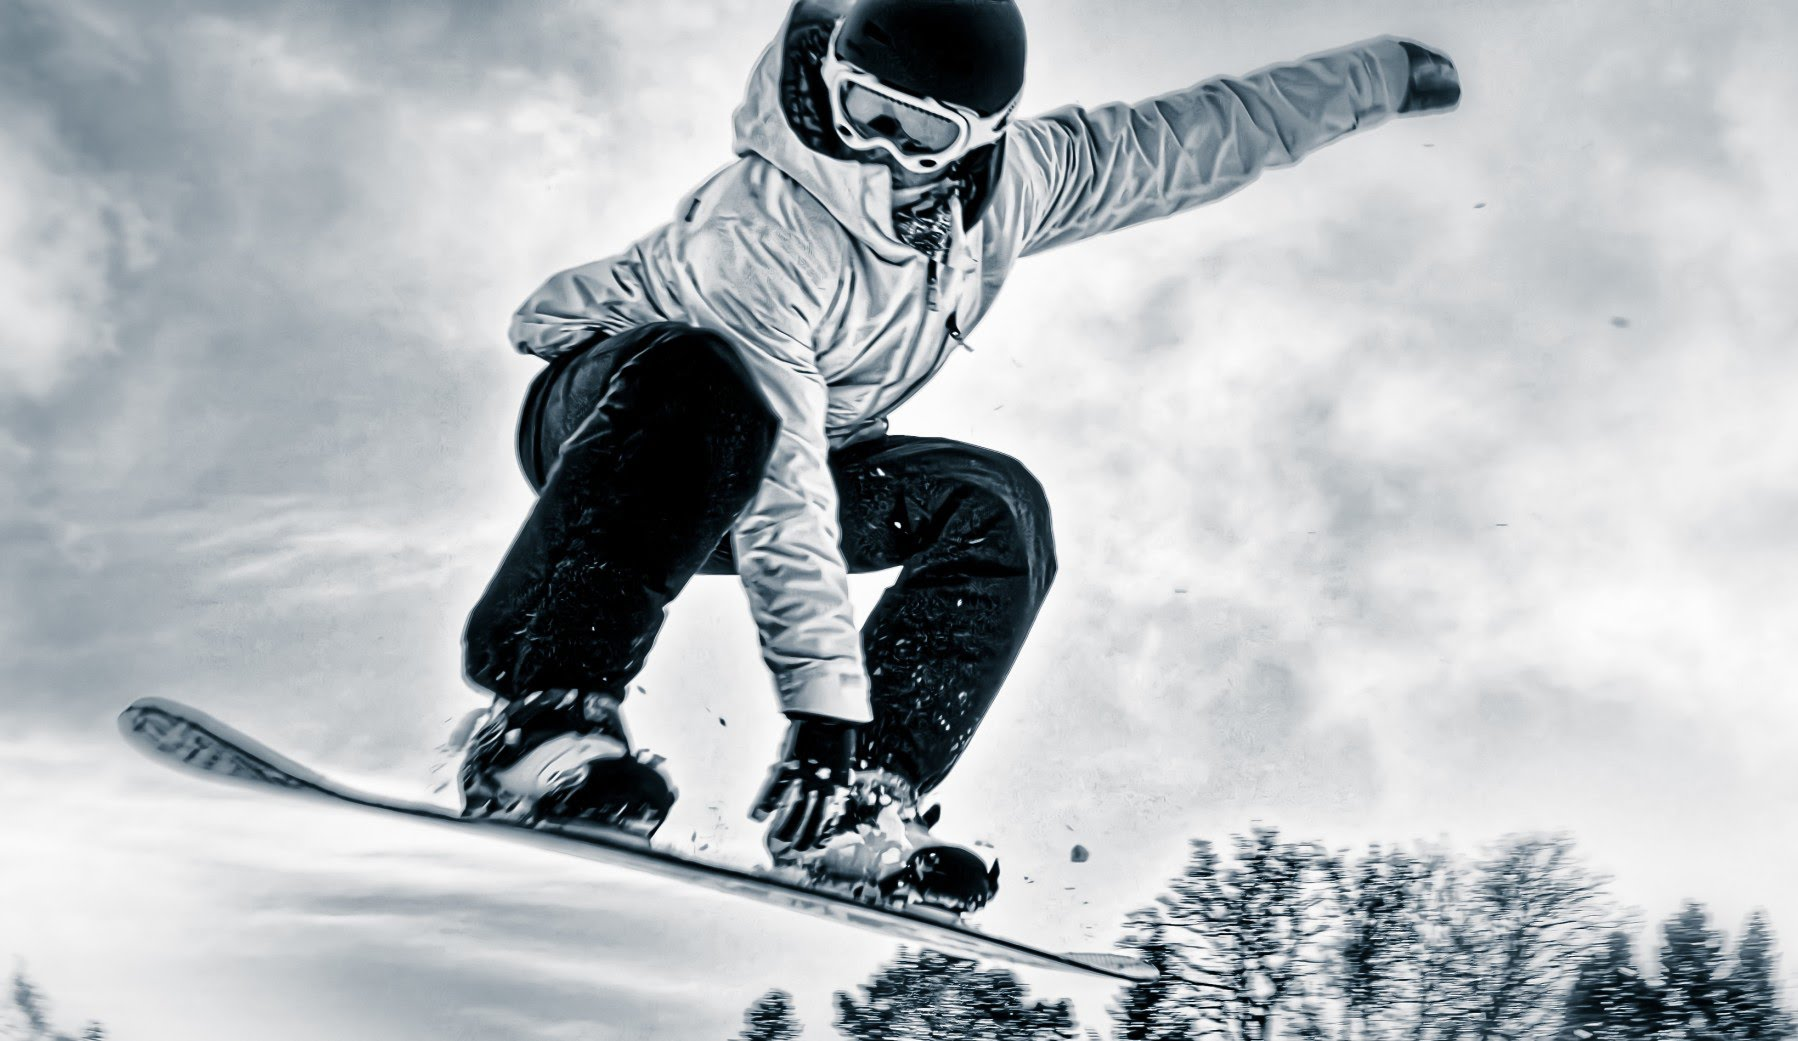 Amazing Snowboarding Pictures & Backgrounds